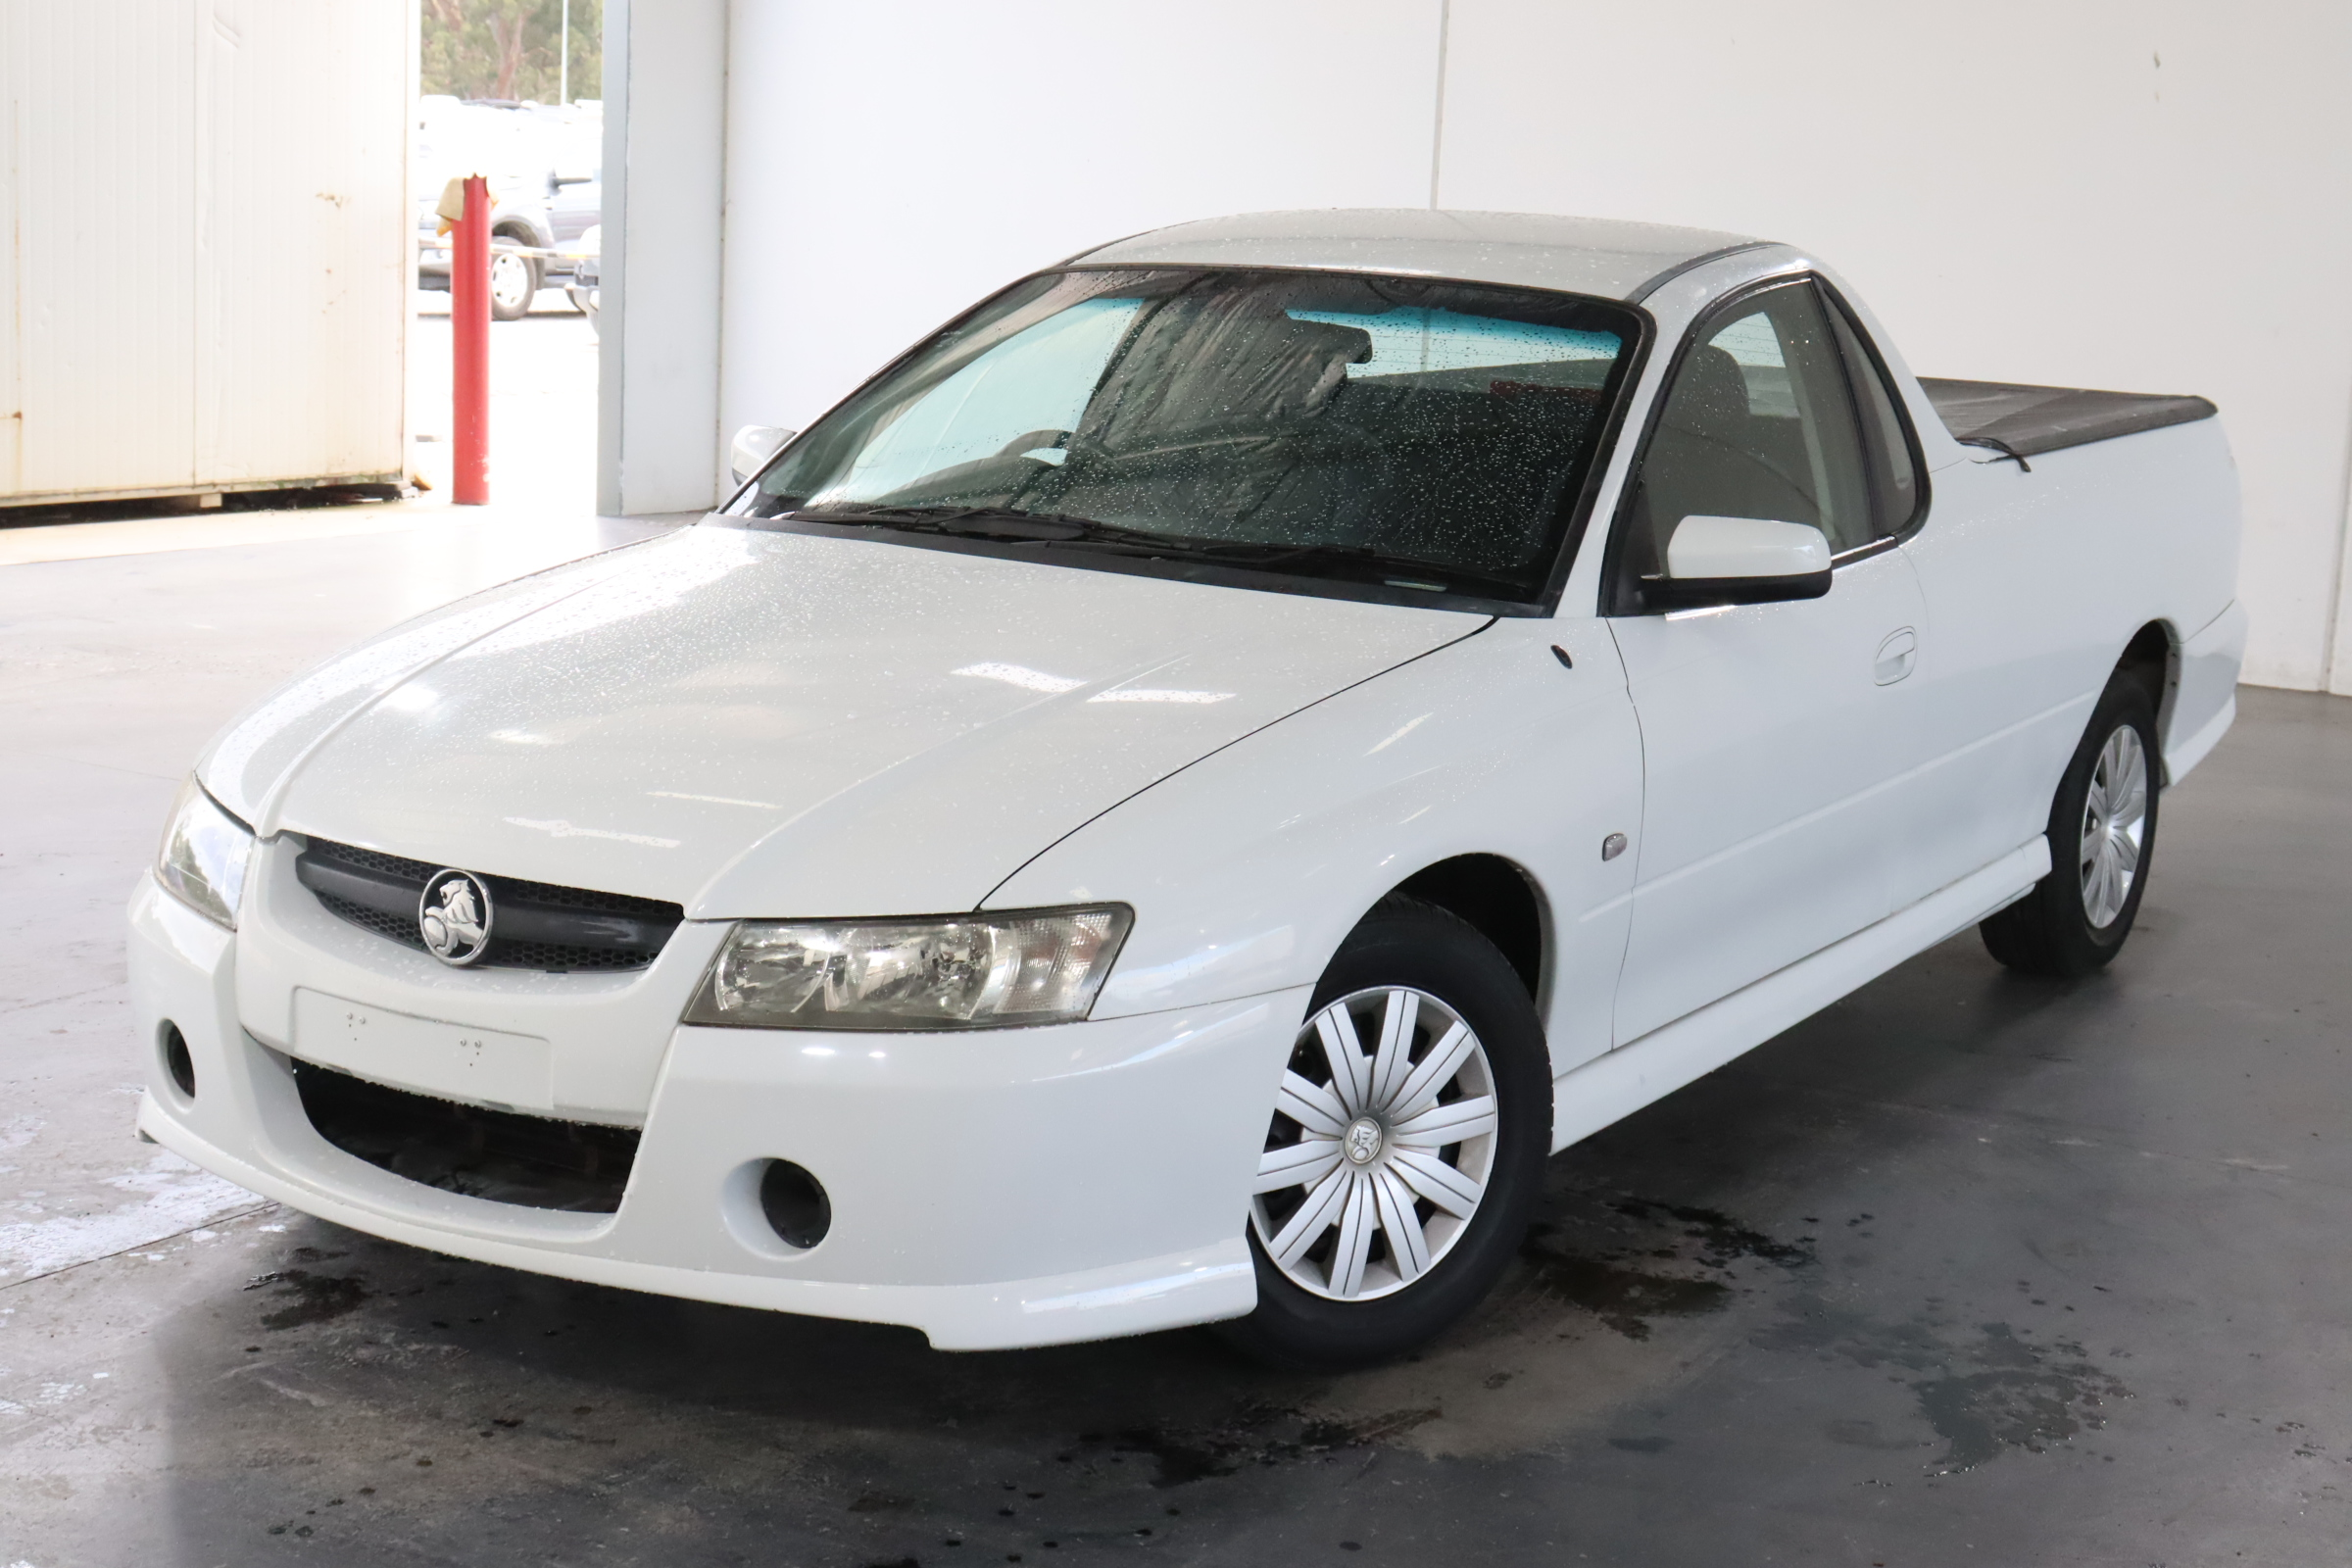 2005 Holden Commodore S VZ Automatic Ute(wovr+repair)